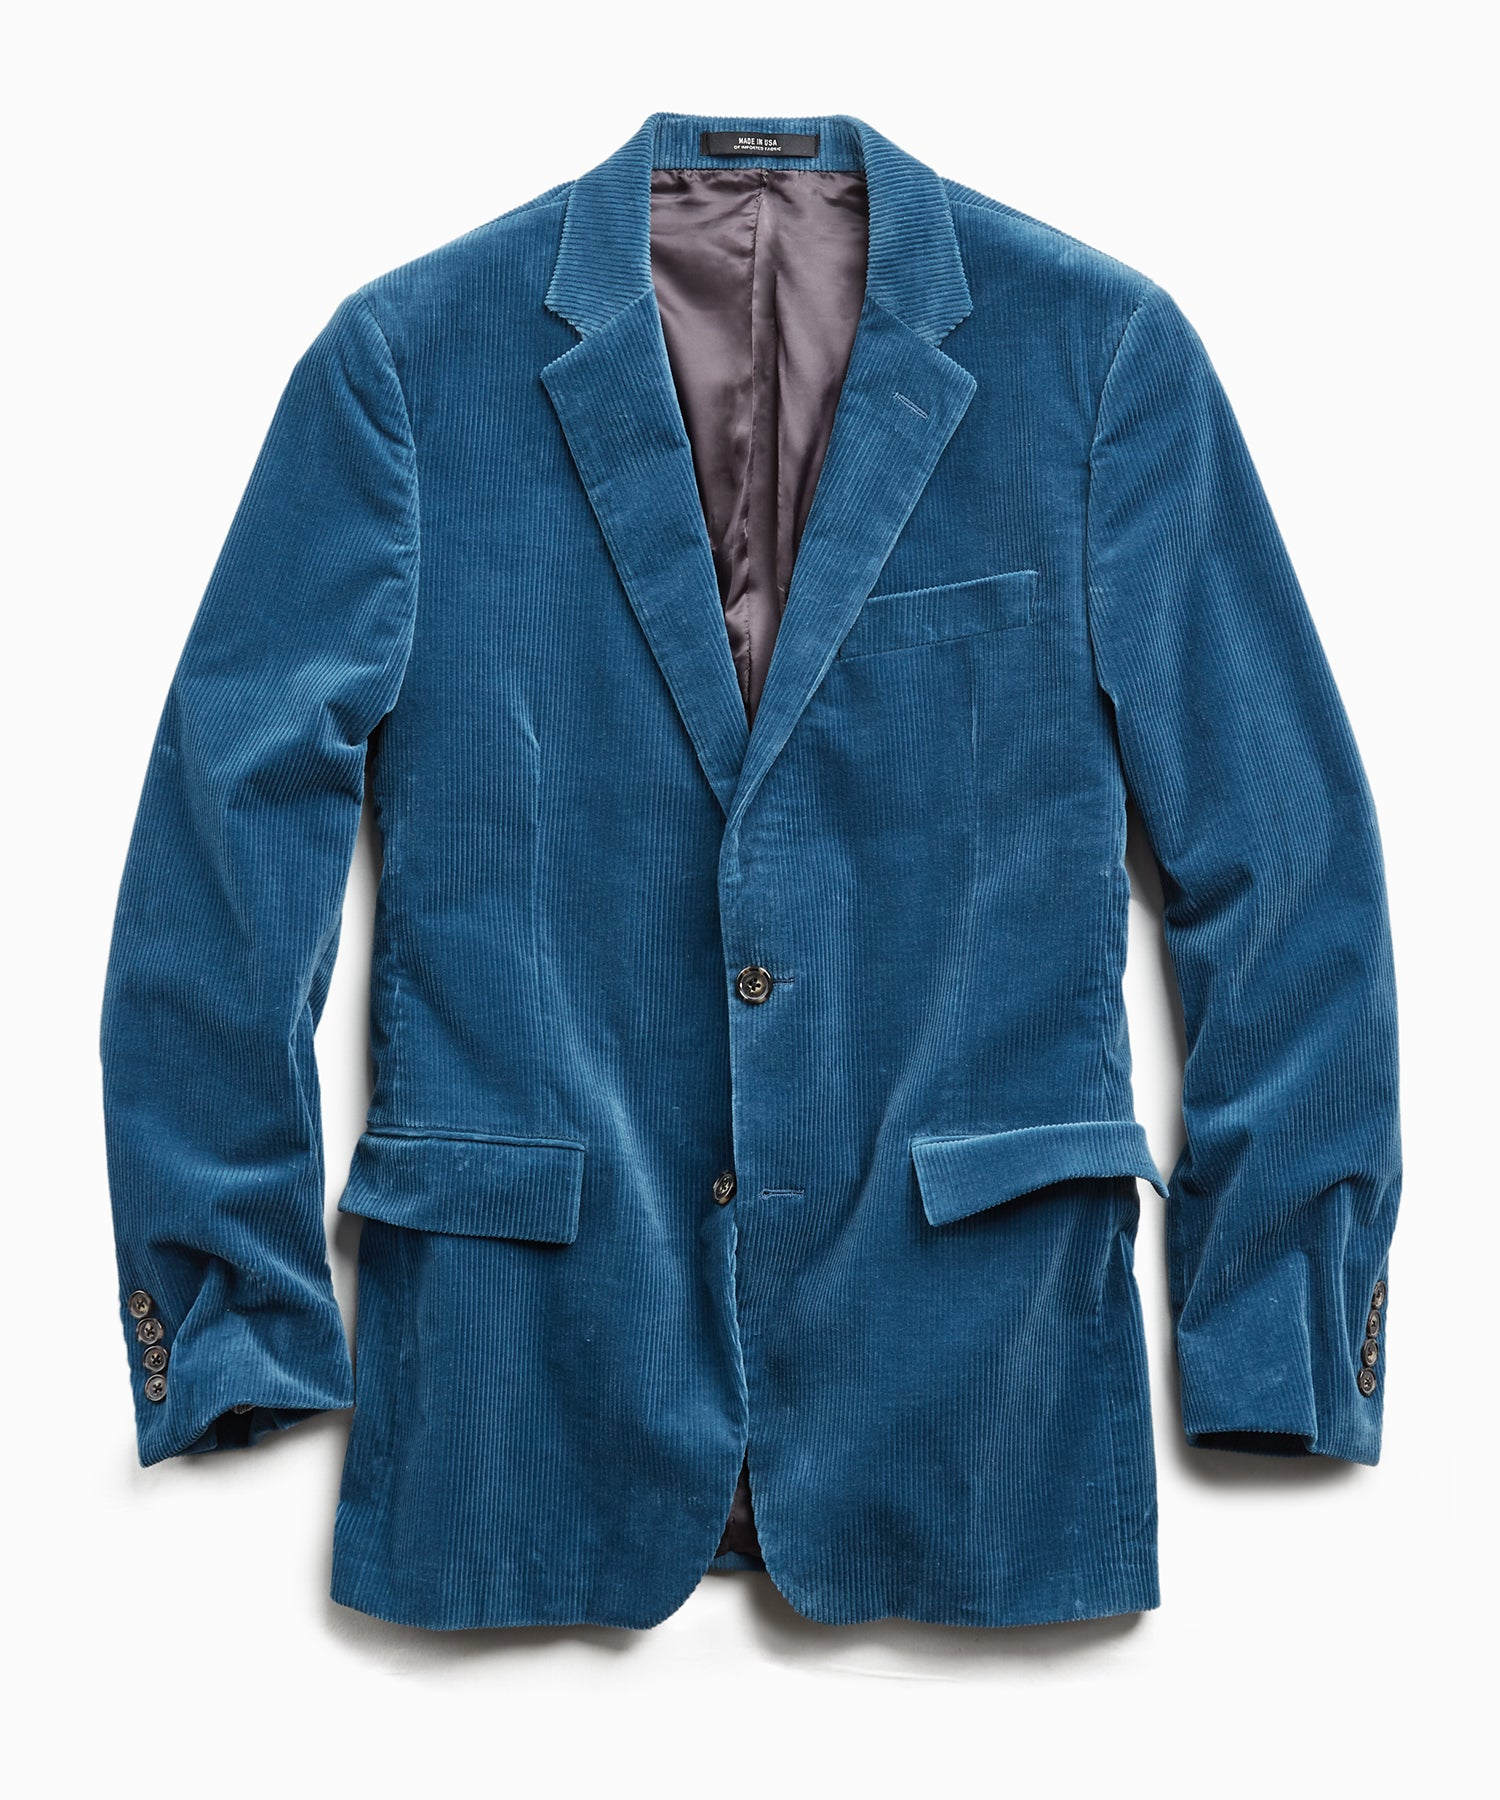 Italian Stretch Cord Sutton Suit Jacket in Teal